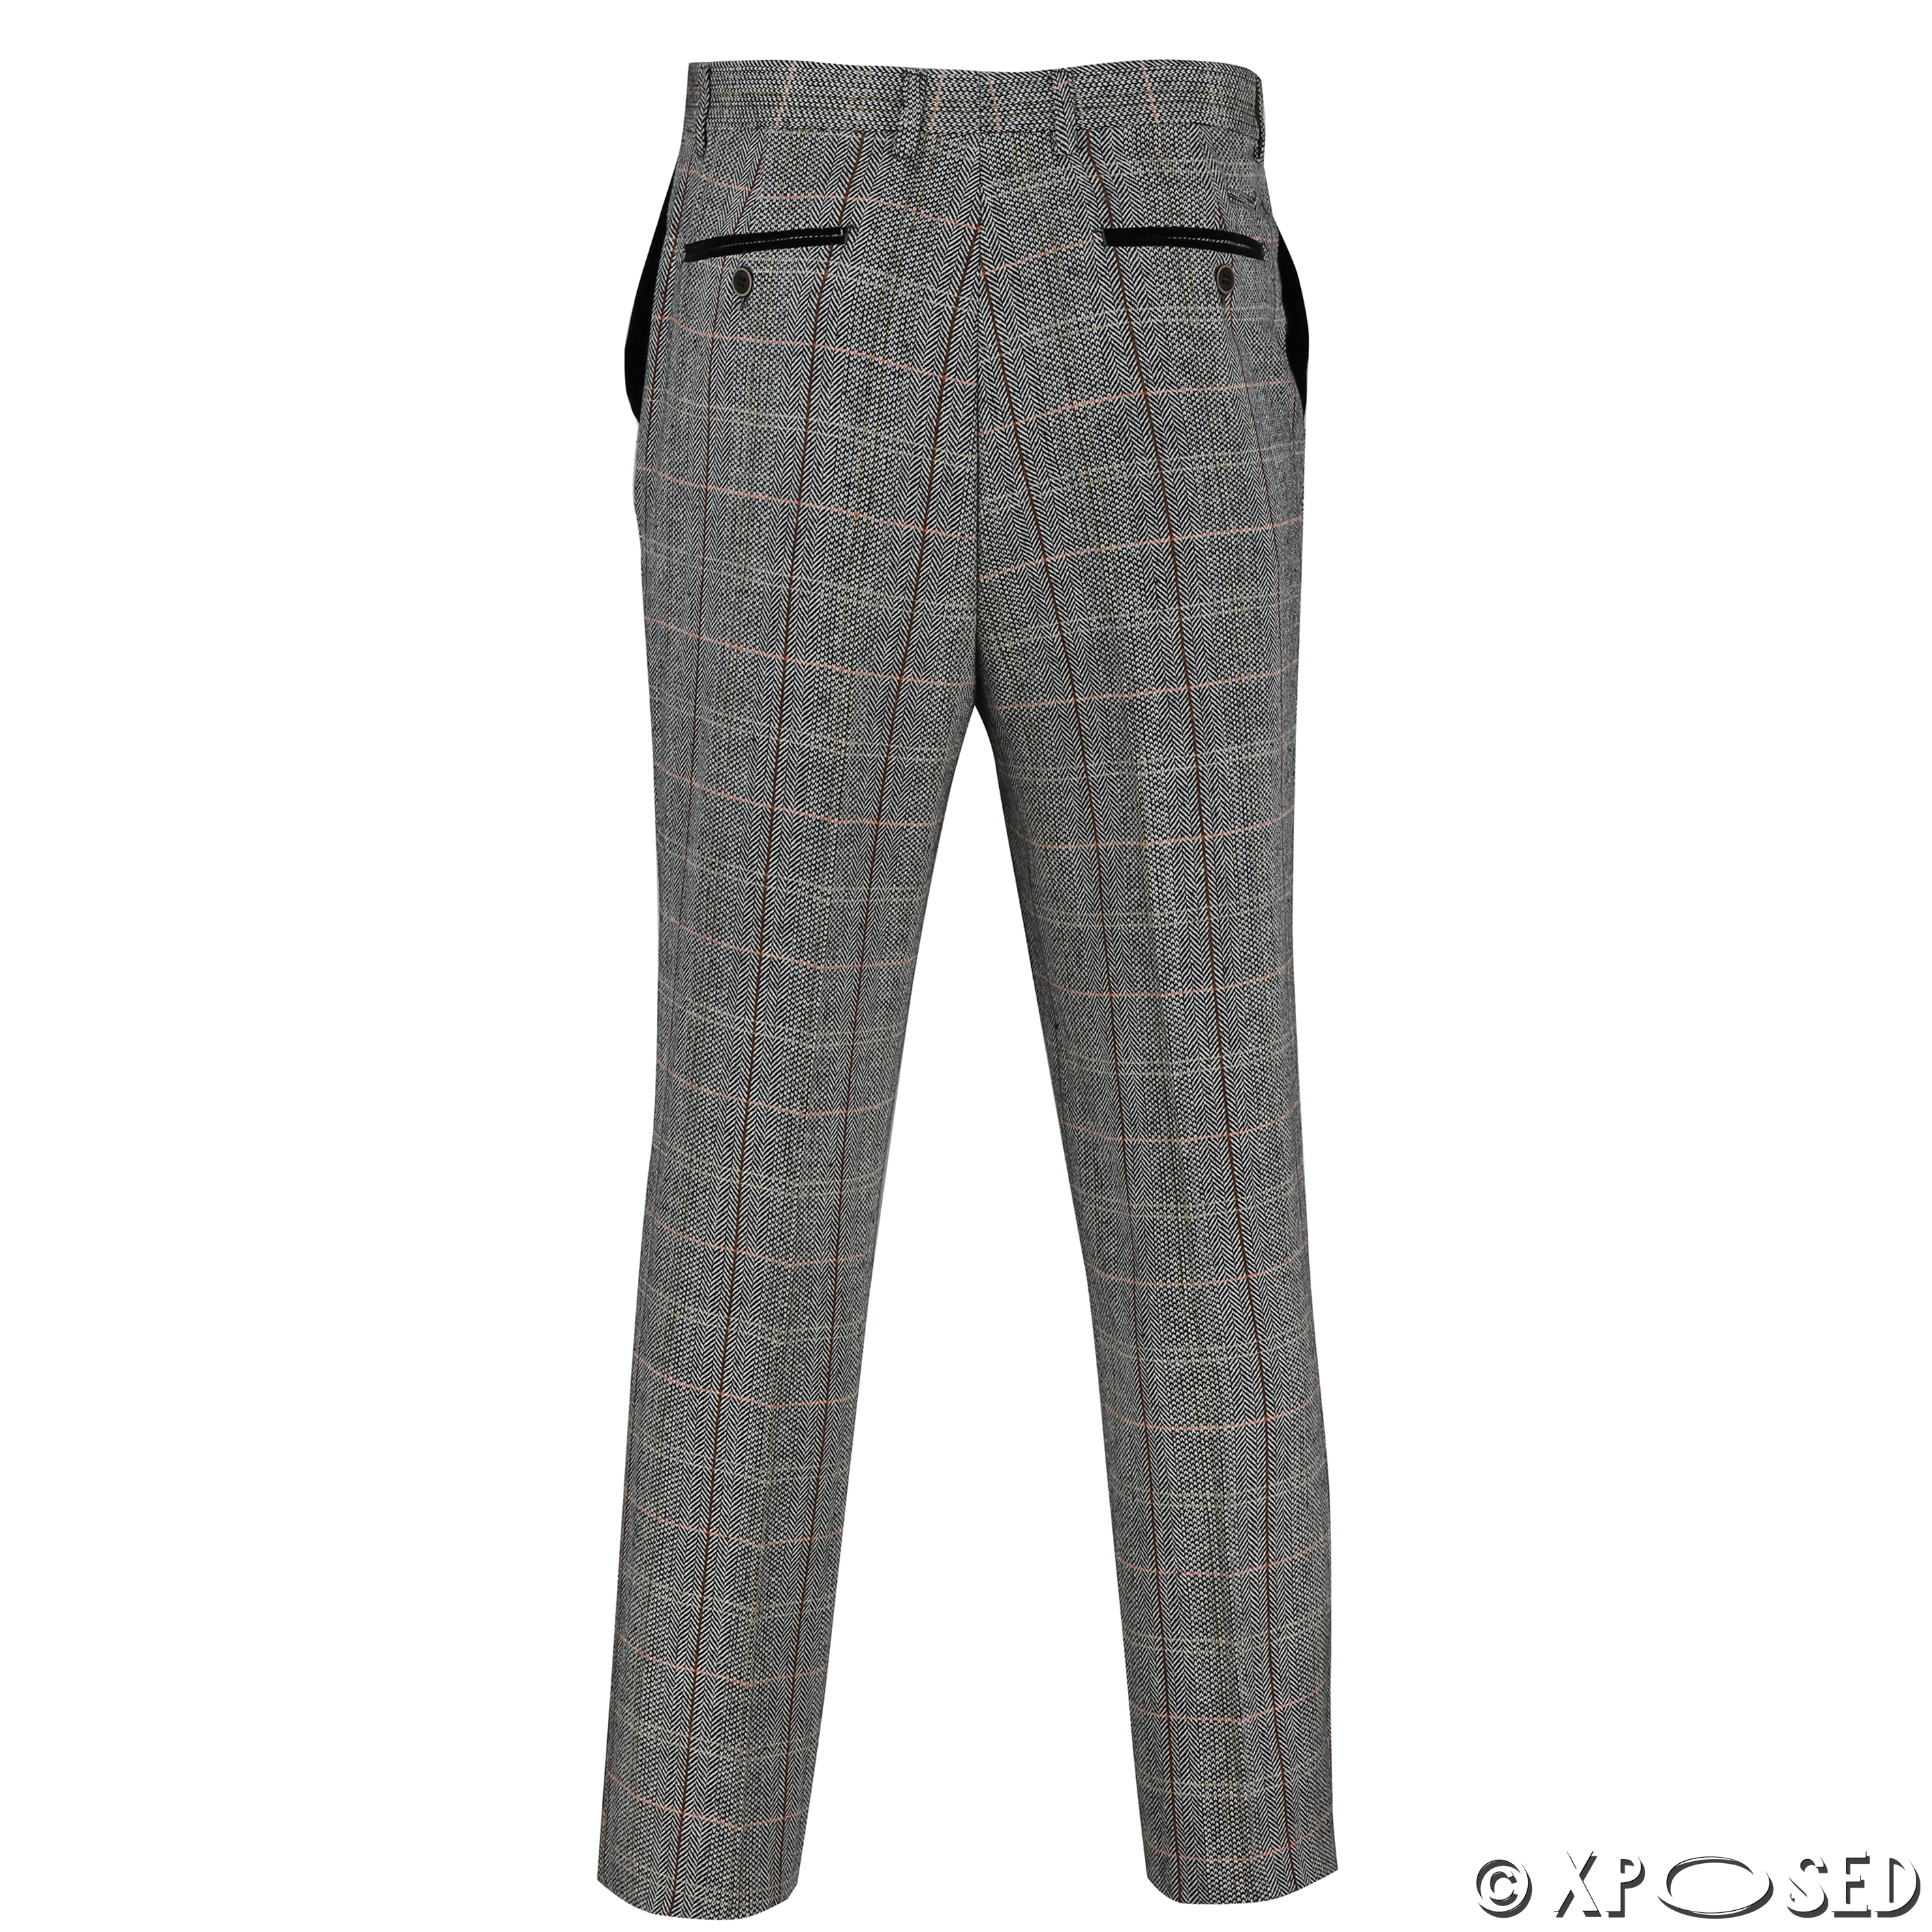 Tweed Pants Mens - results from brands MANUEL RITZ, Isabel De Pedro, Kerrits, products like Chenille Reversible 42